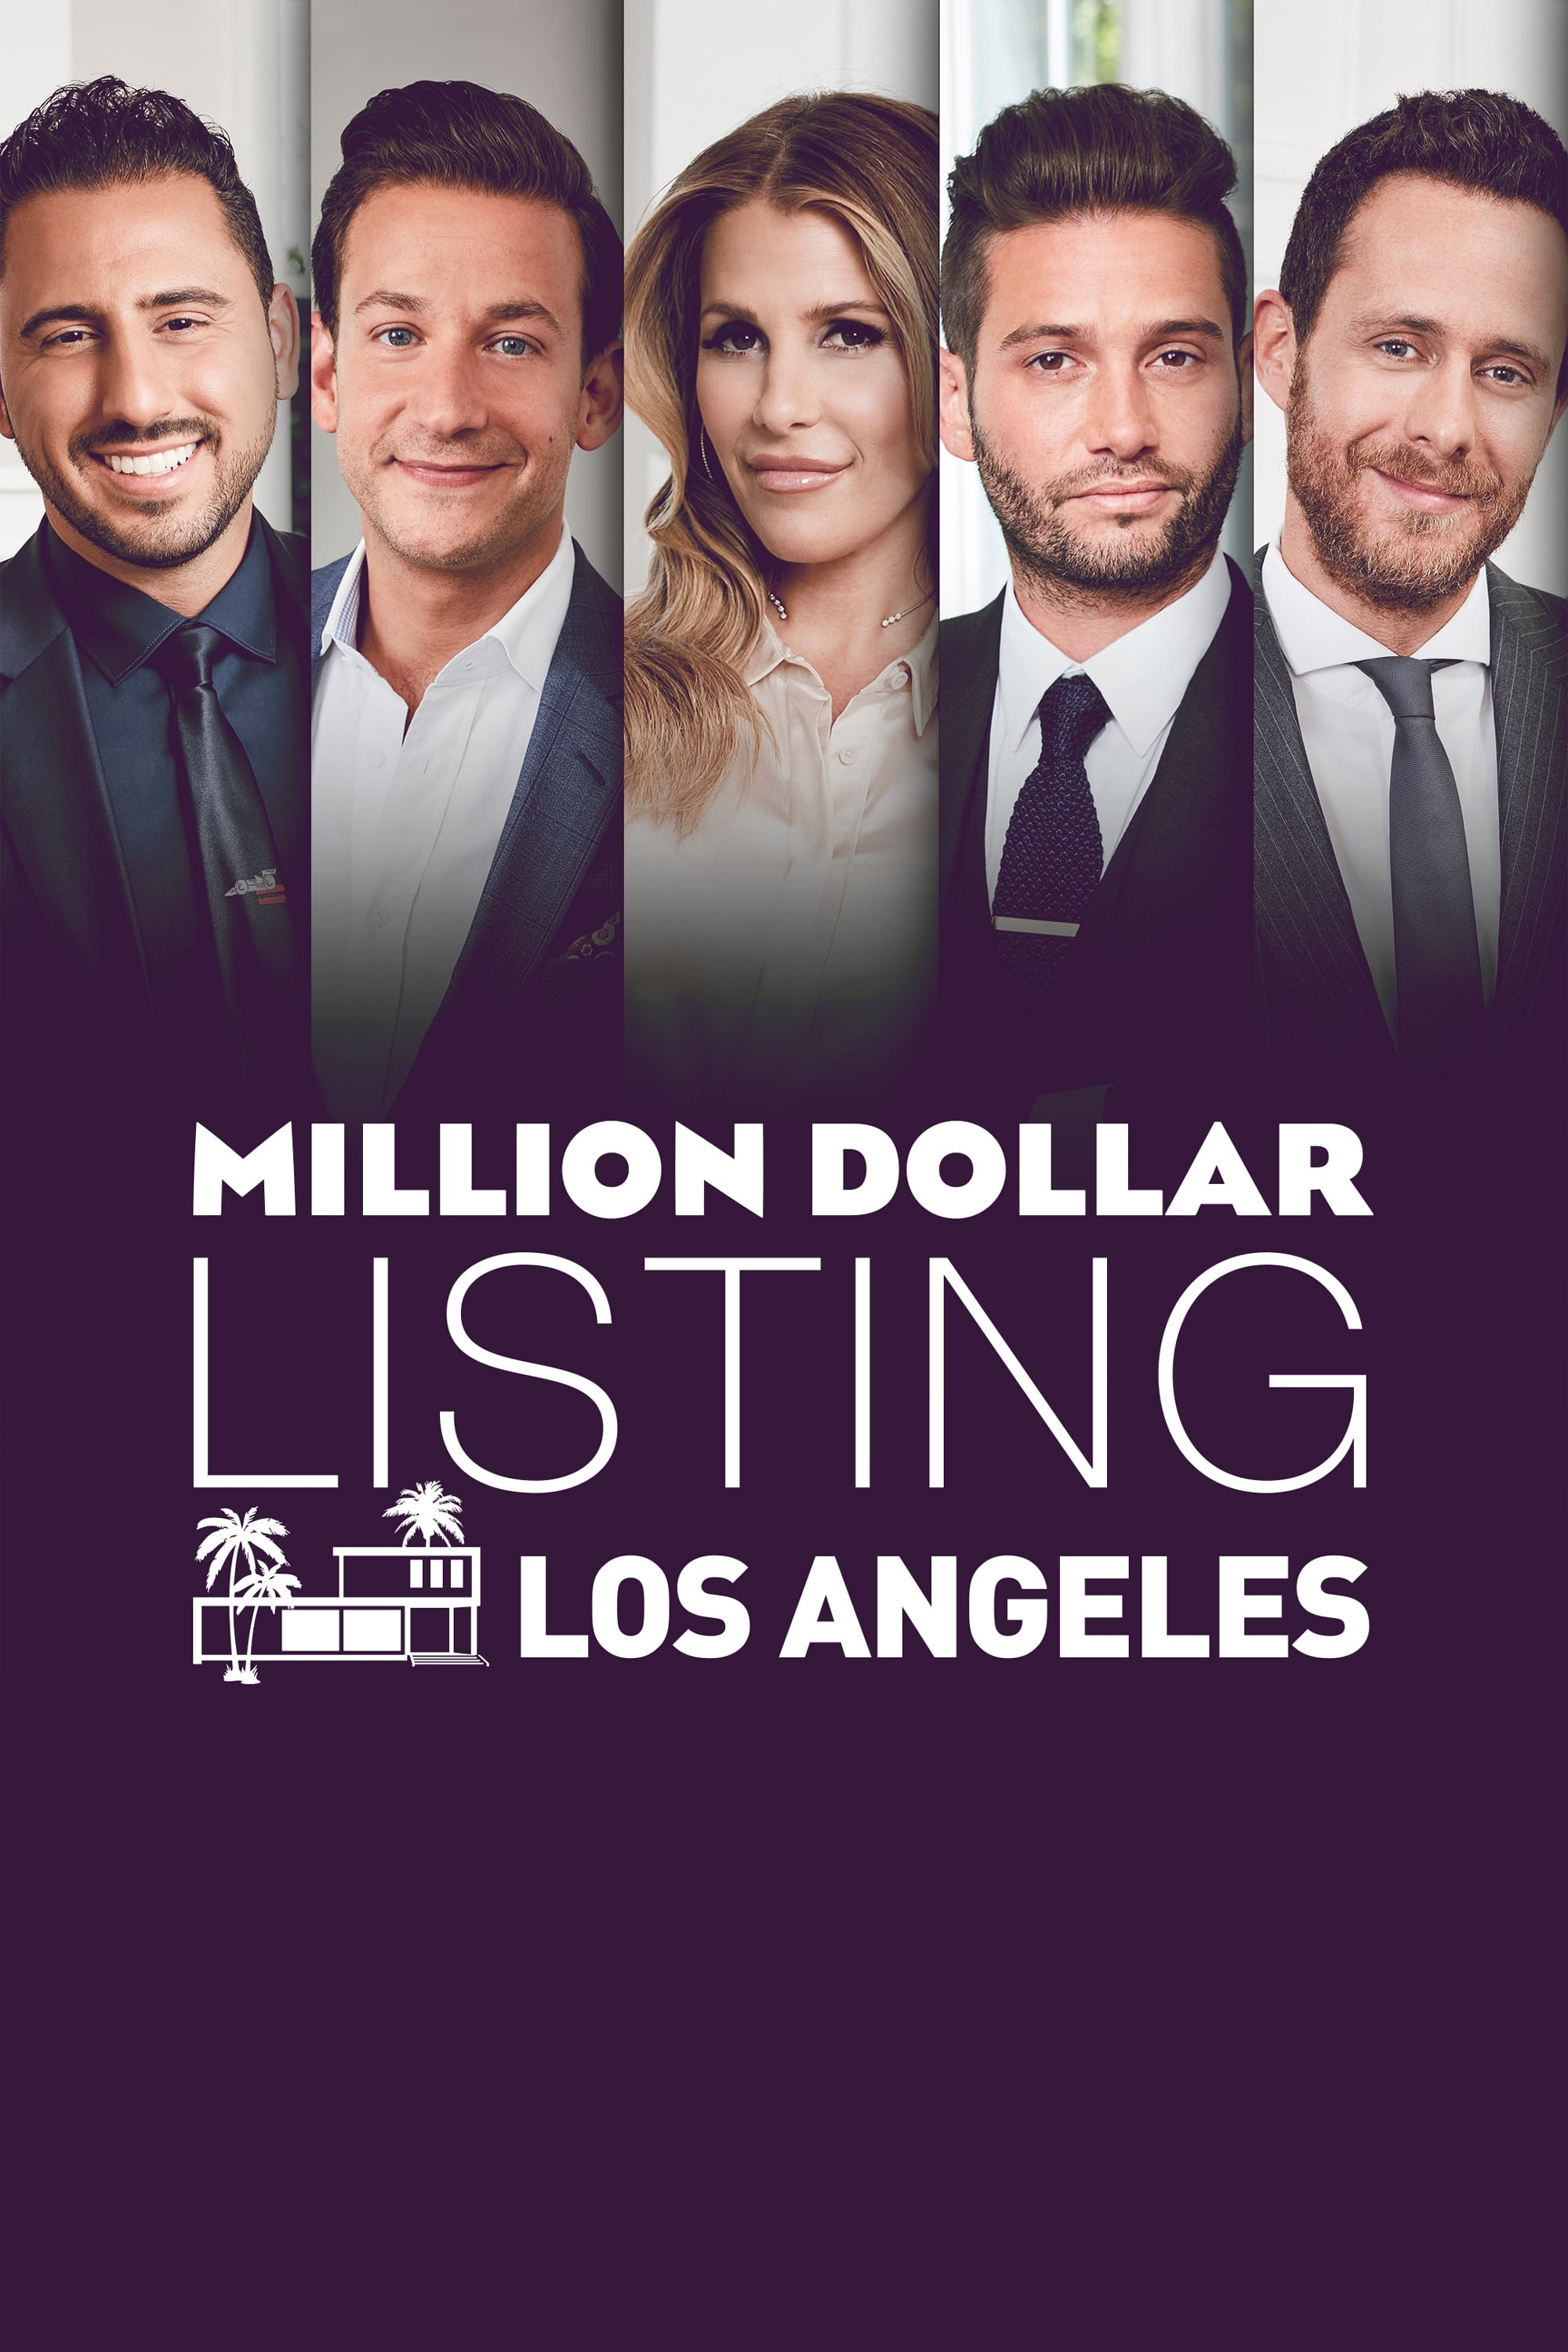 Million Dollar Listing Los Angeles (2006)